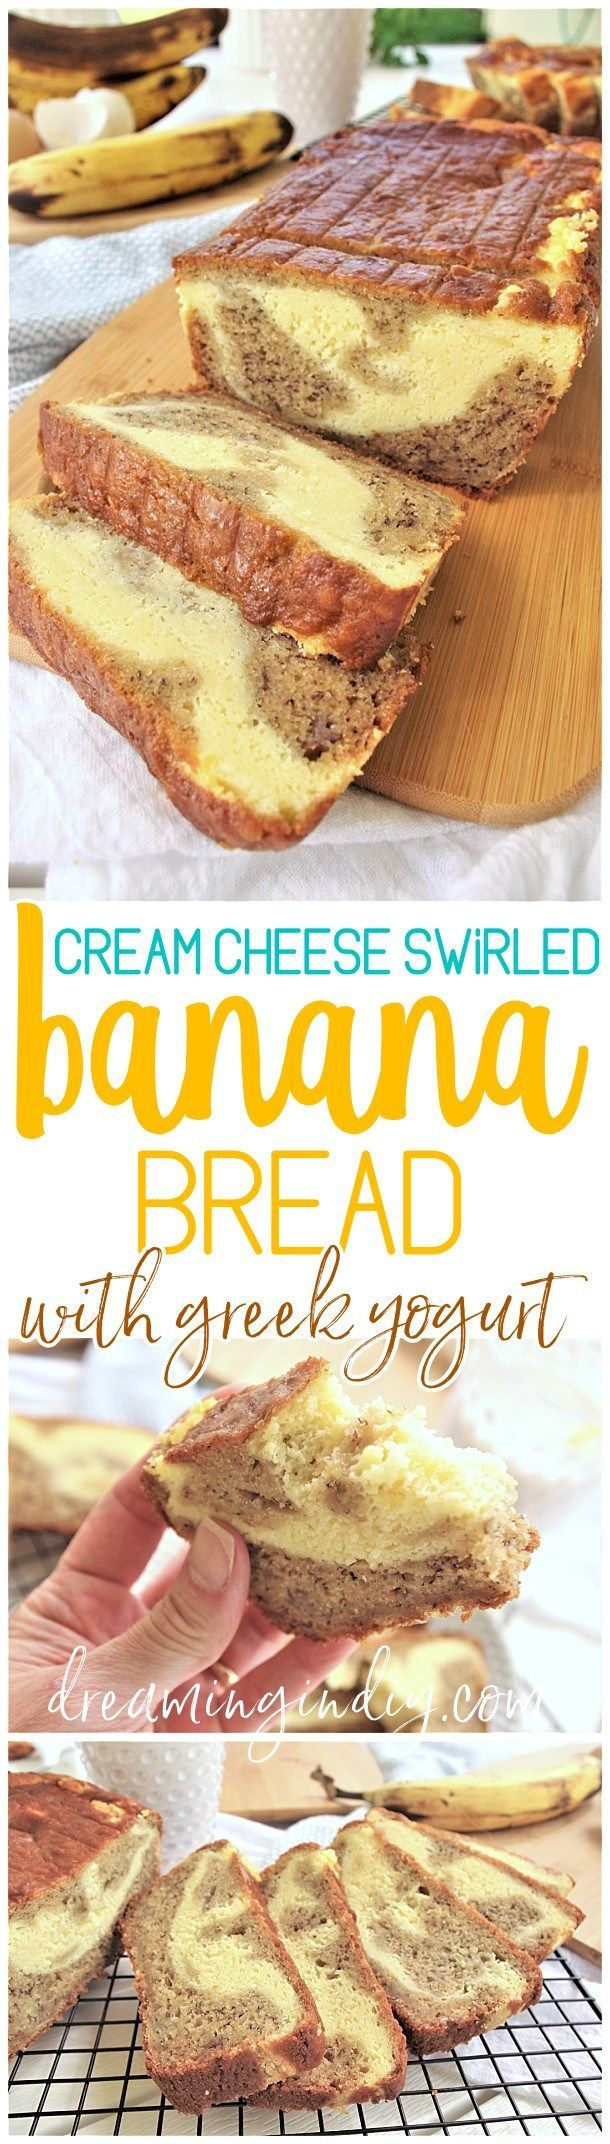 The Best Easy Cream Cheese Filled Banana Dessert Bread Recipe by Dreaming in DIY - This is the BEST banana bread franken recipe we've ever conjured up (and we've tried a bagillion and a half). It turns out with perfect yummy texture and flavors. To tip the scales from delish to perfection - it's swirled with scrumptious cream cheese filling elevating it from yummy snack to irresistible dessert status!